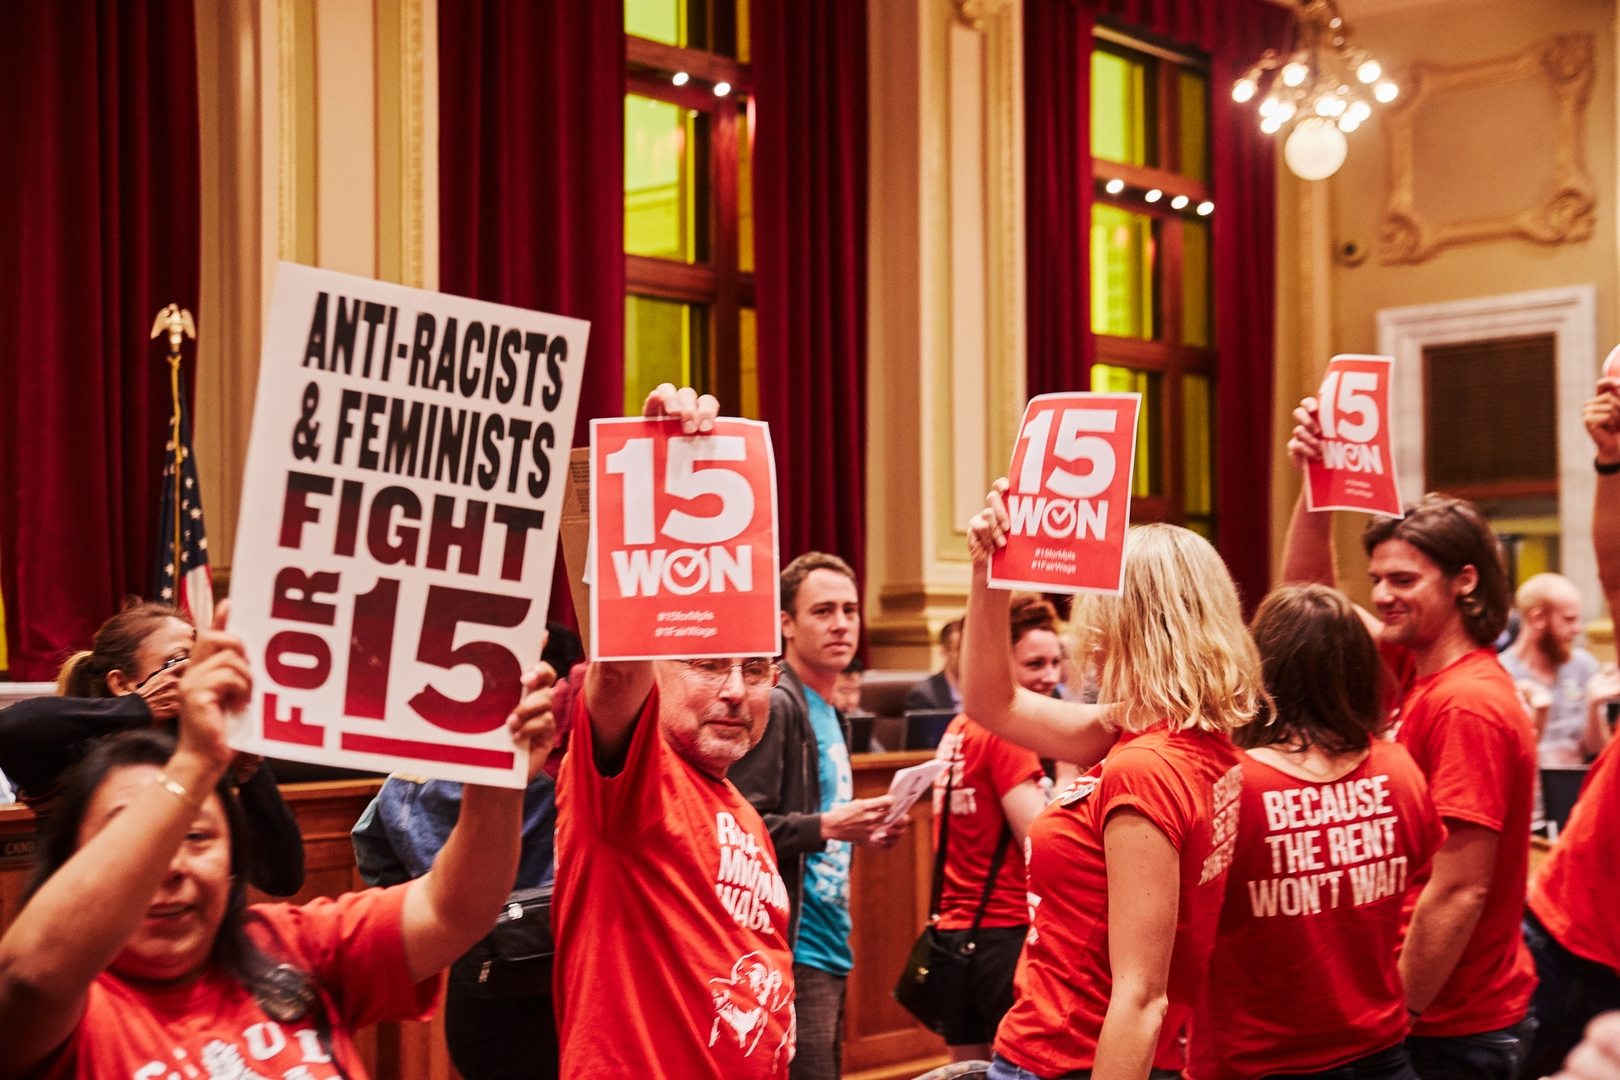 """A group of people in red shirts holding """"Fight for 15"""" signs."""